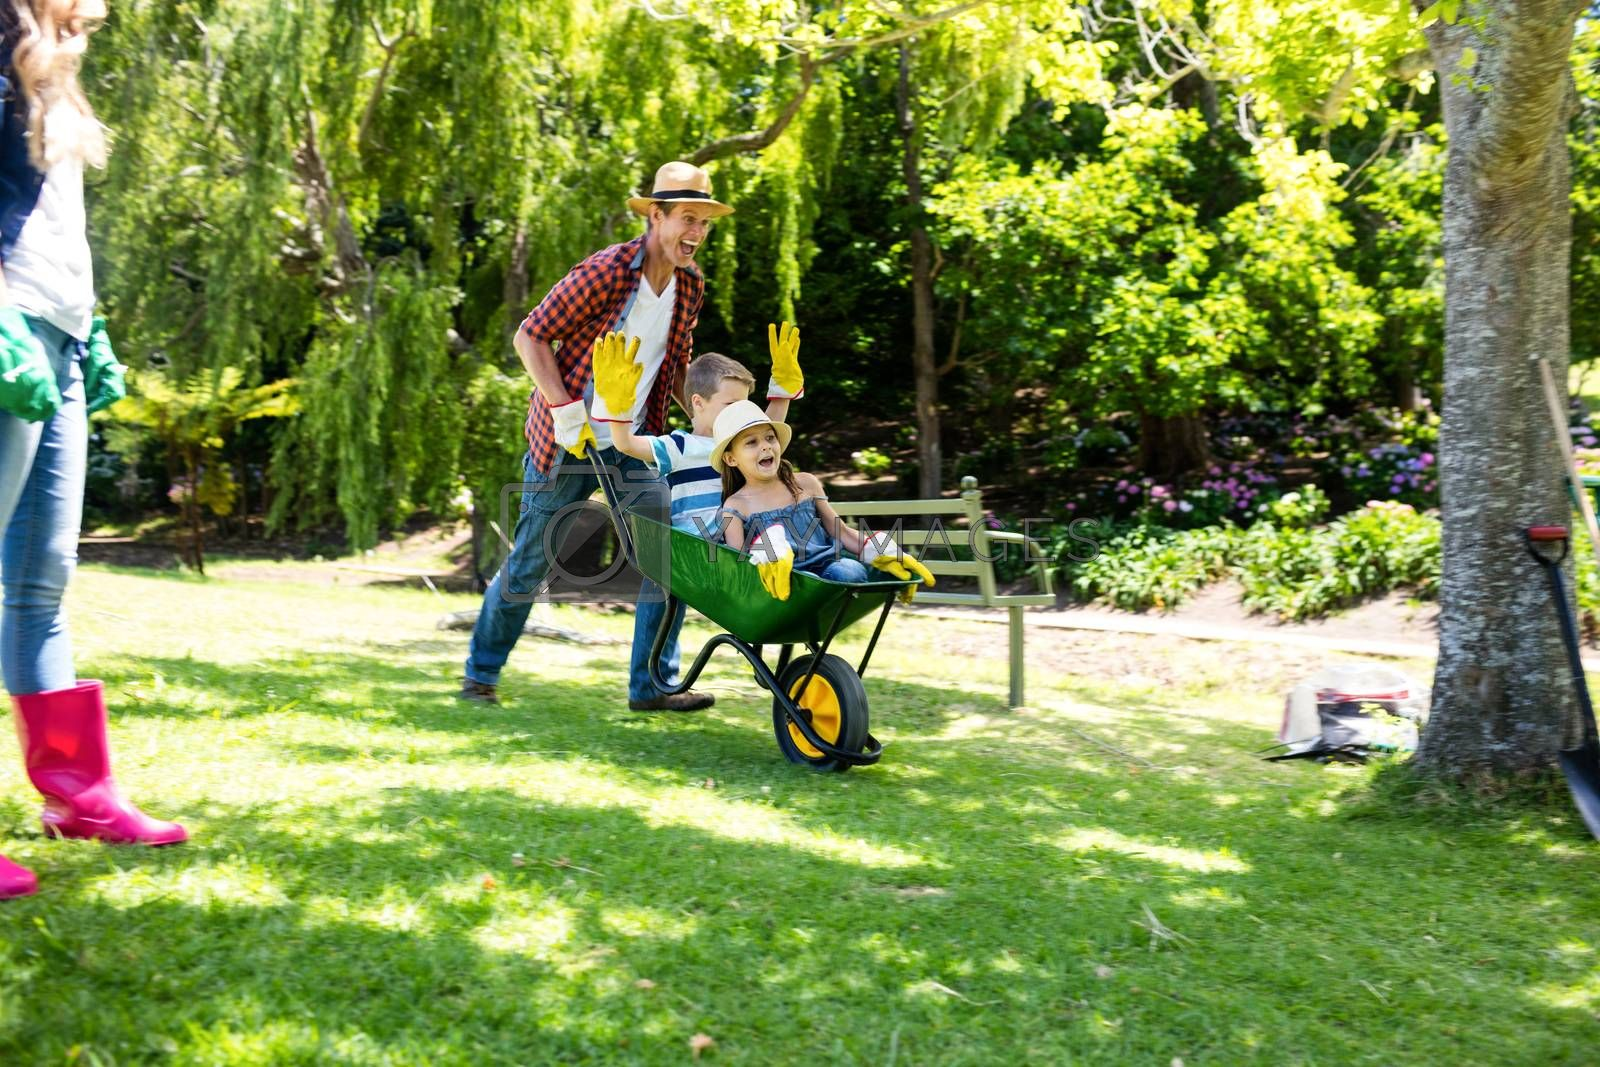 Father carrying his son and daughter in a wheelbarrow in a park